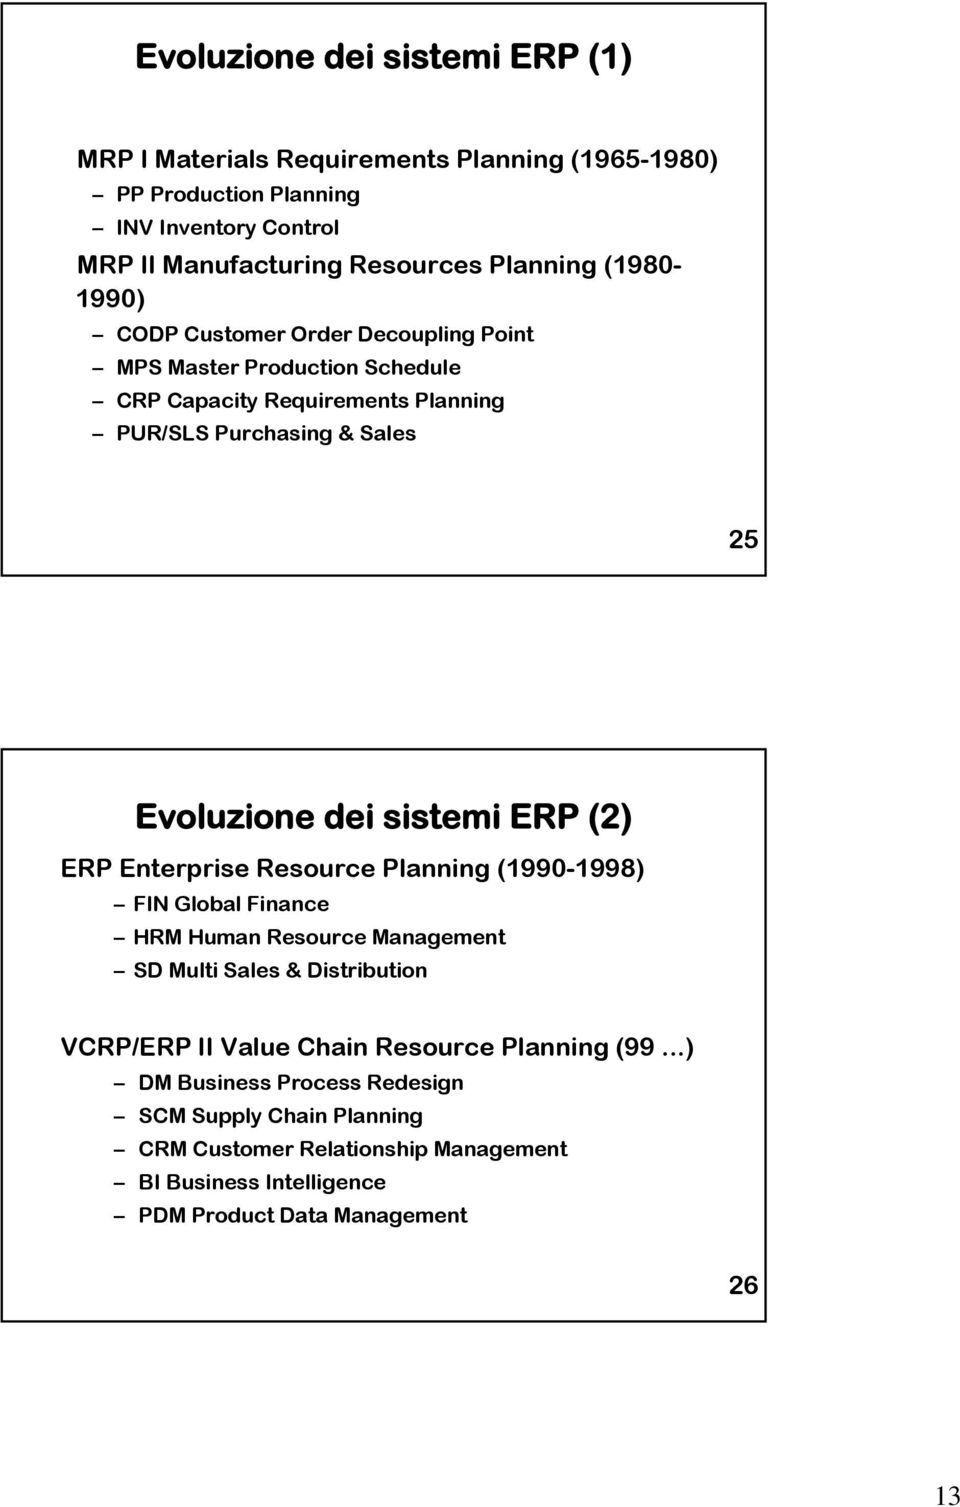 sistemi ERP (2) ERP Enterprise Resource Planning (1990-1998) FIN Global Finance HRM Human Resource Management SD Multi Sales & Distribution VCRP/ERP II Value Chain